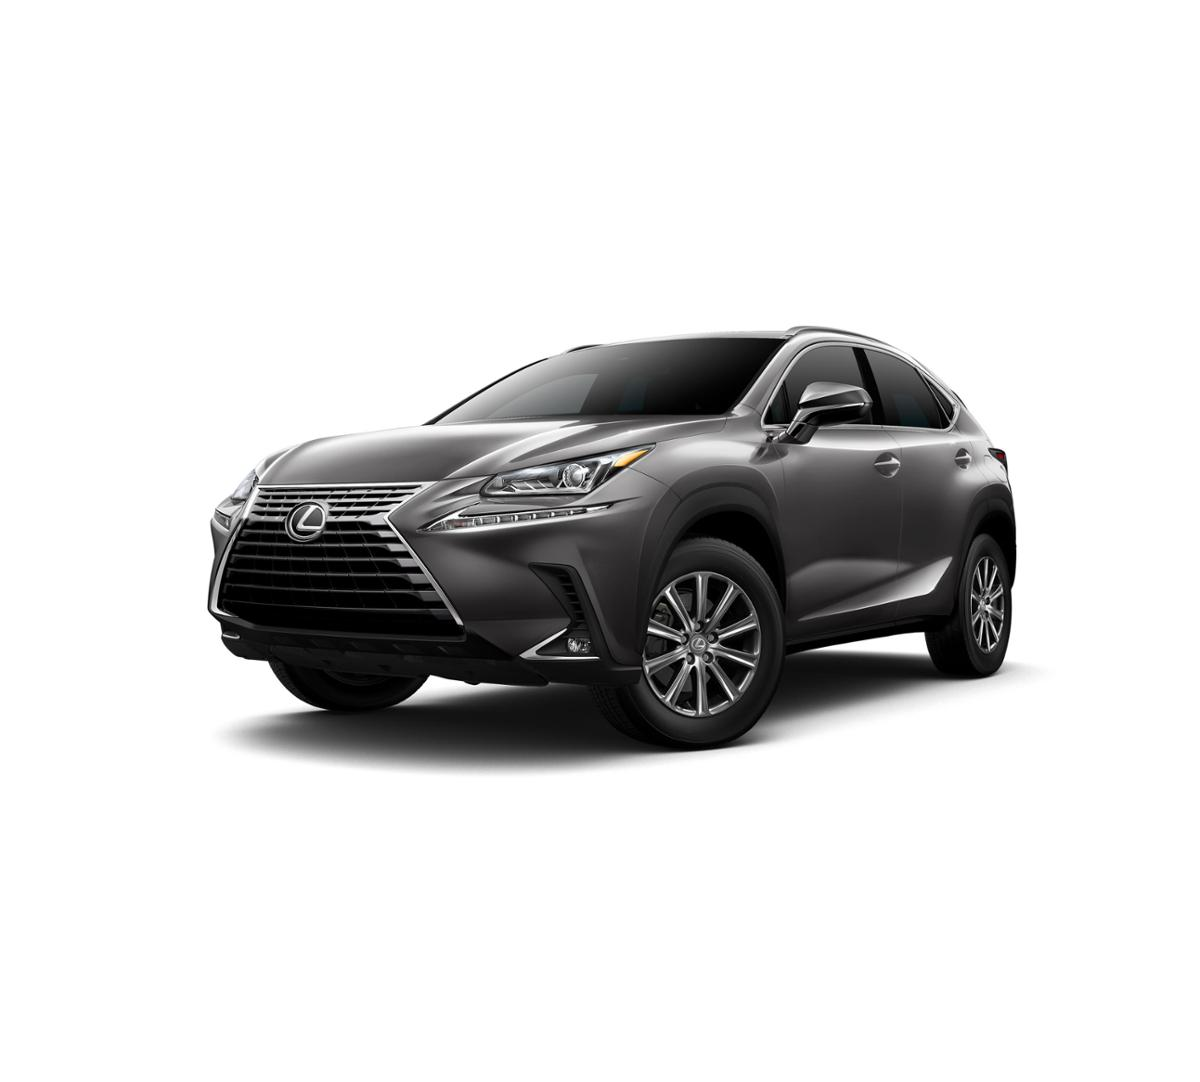 Country Curtains Westport Ct New 2019 Lexus Nx 300 For Sale At Lexus Of Westport Your Ct